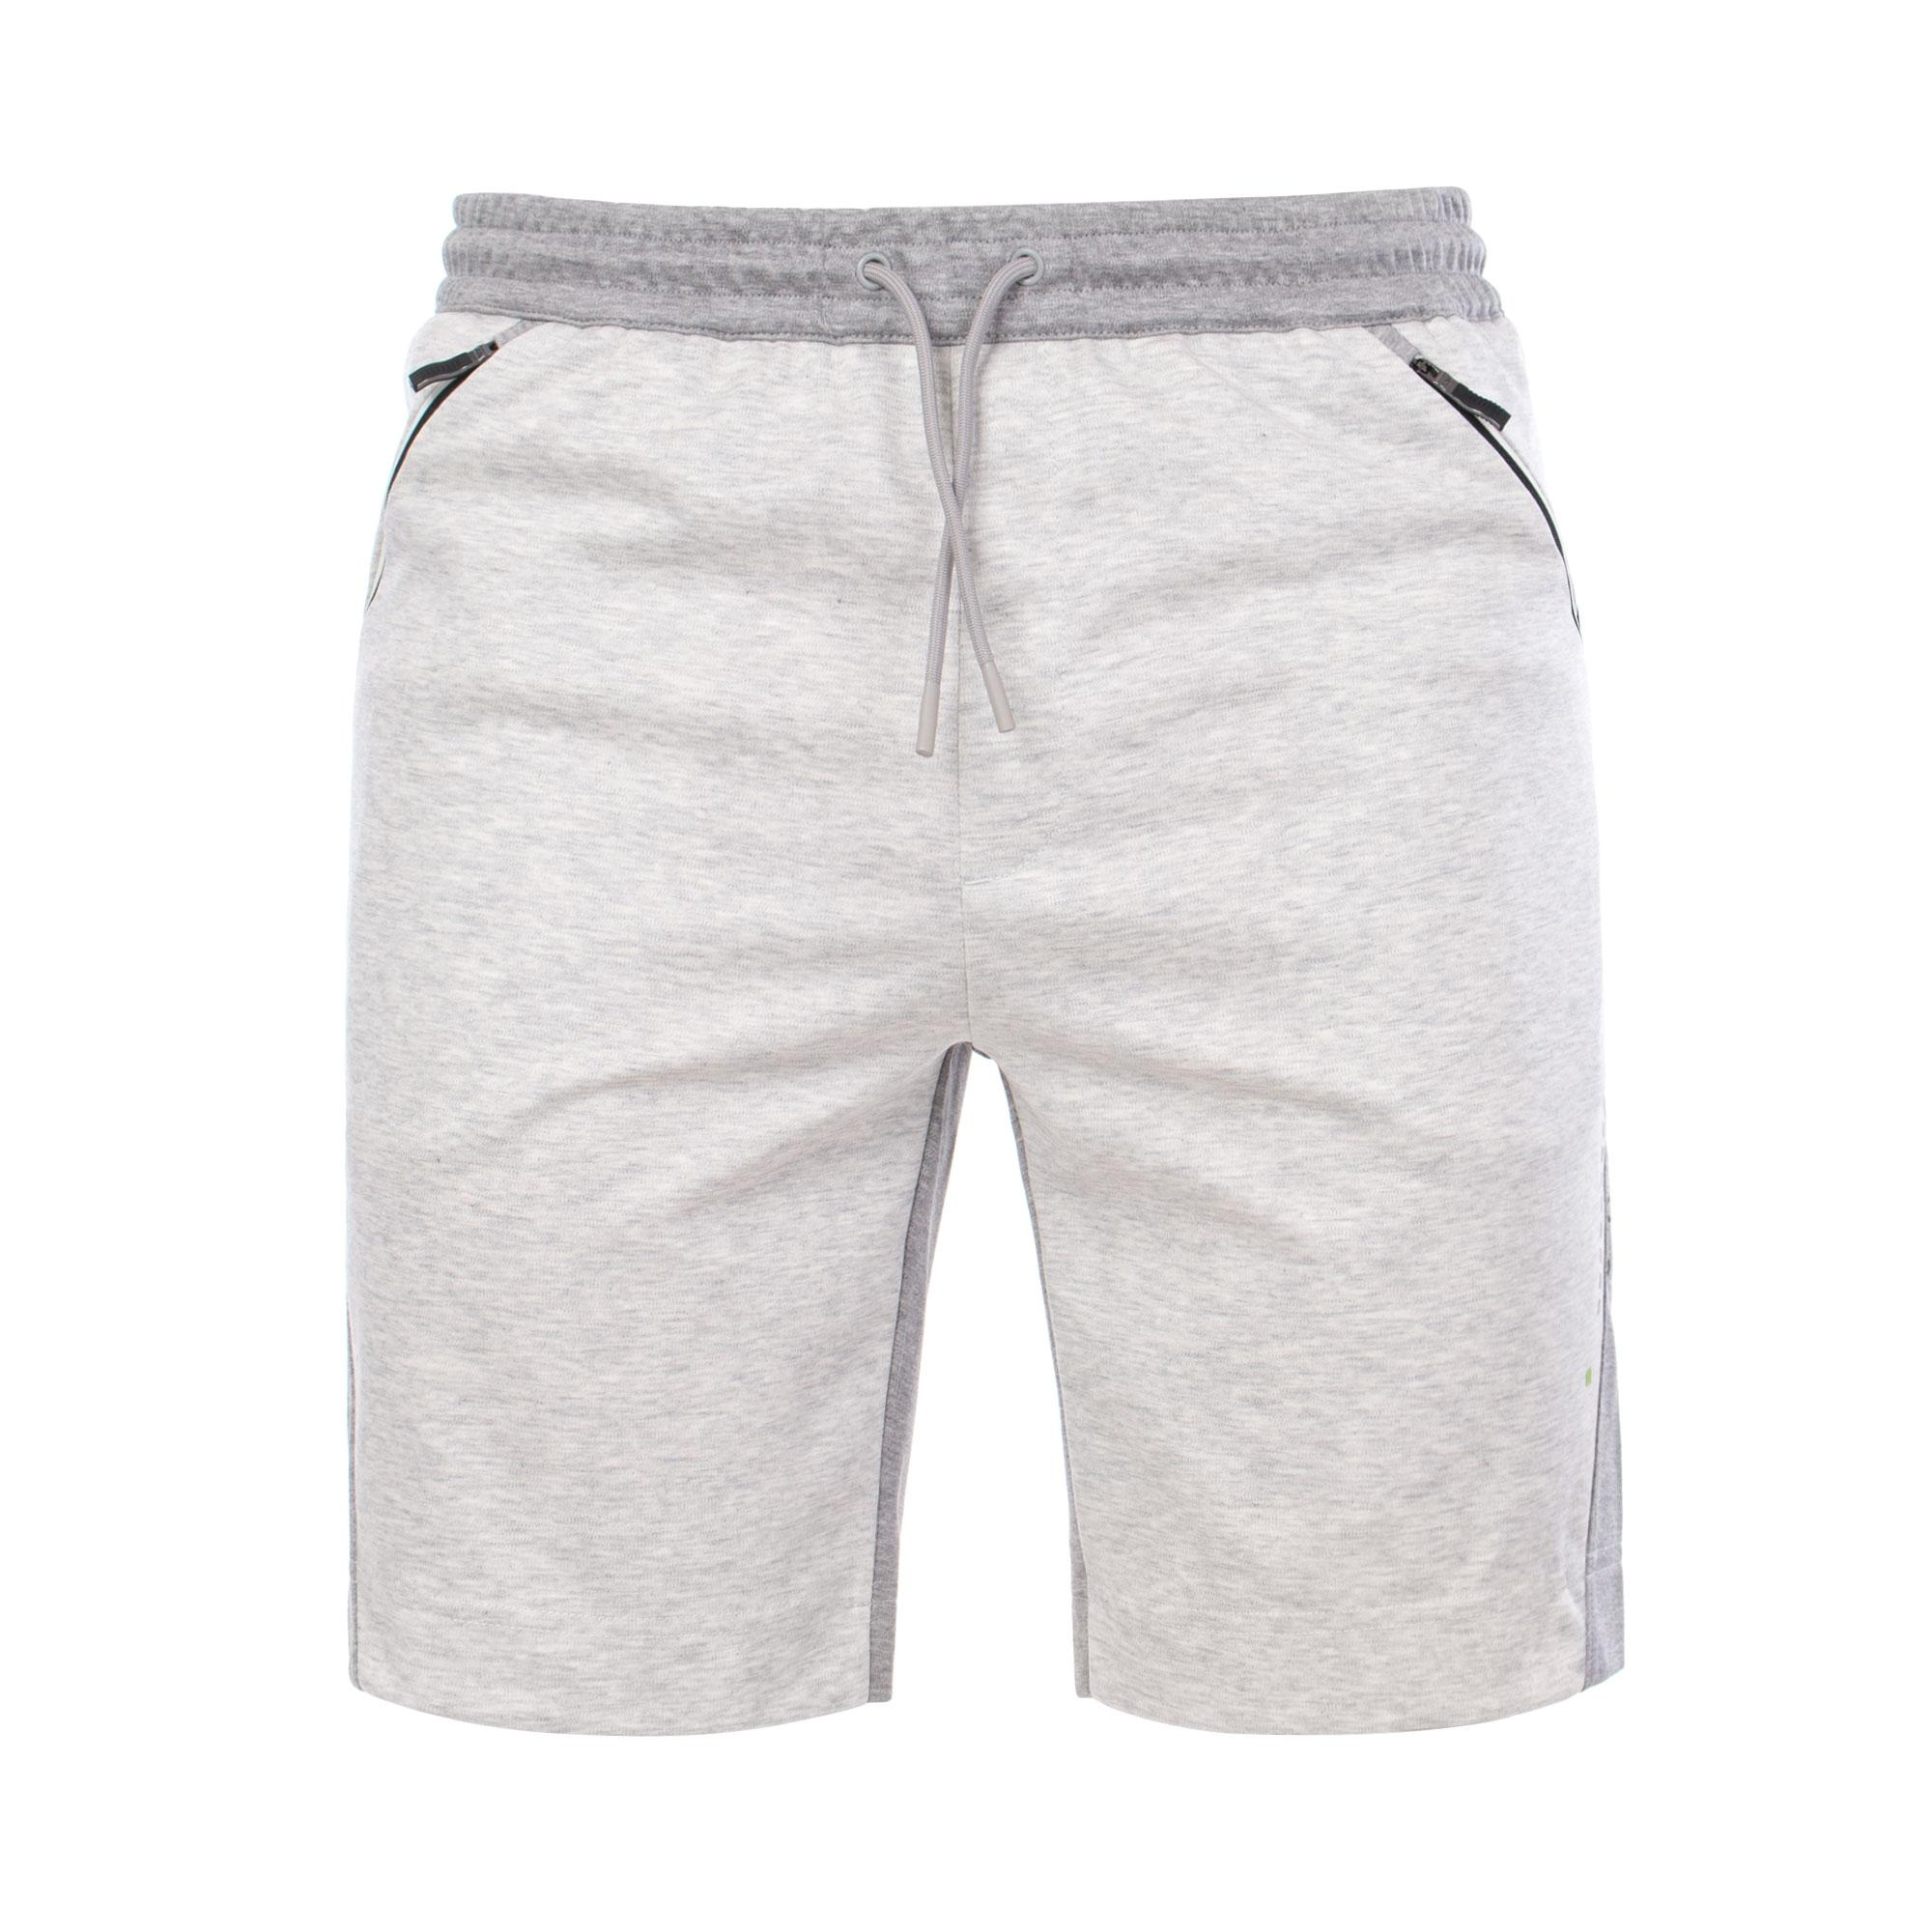 605dffc68 BOSS Athleisure Hsl Slim Fit Shorts in Gray for Men - Lyst